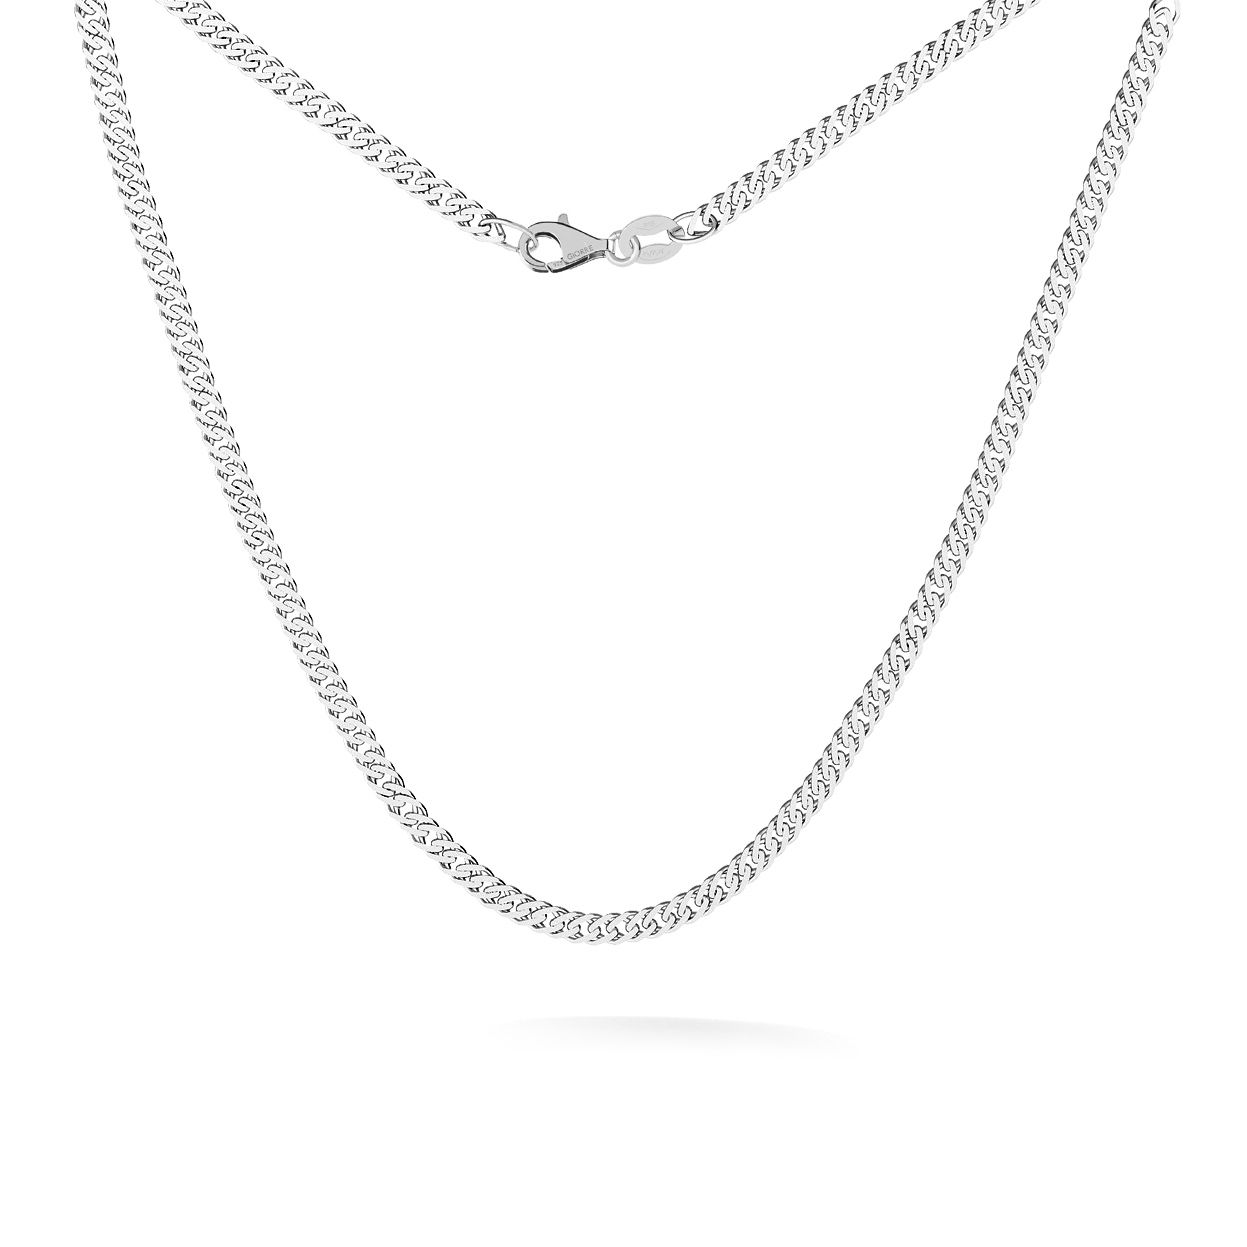 SILVER NECKLACE WITH BALLS 45-55 CM, RHODIUM PLATED (BLACK RHODIUM)